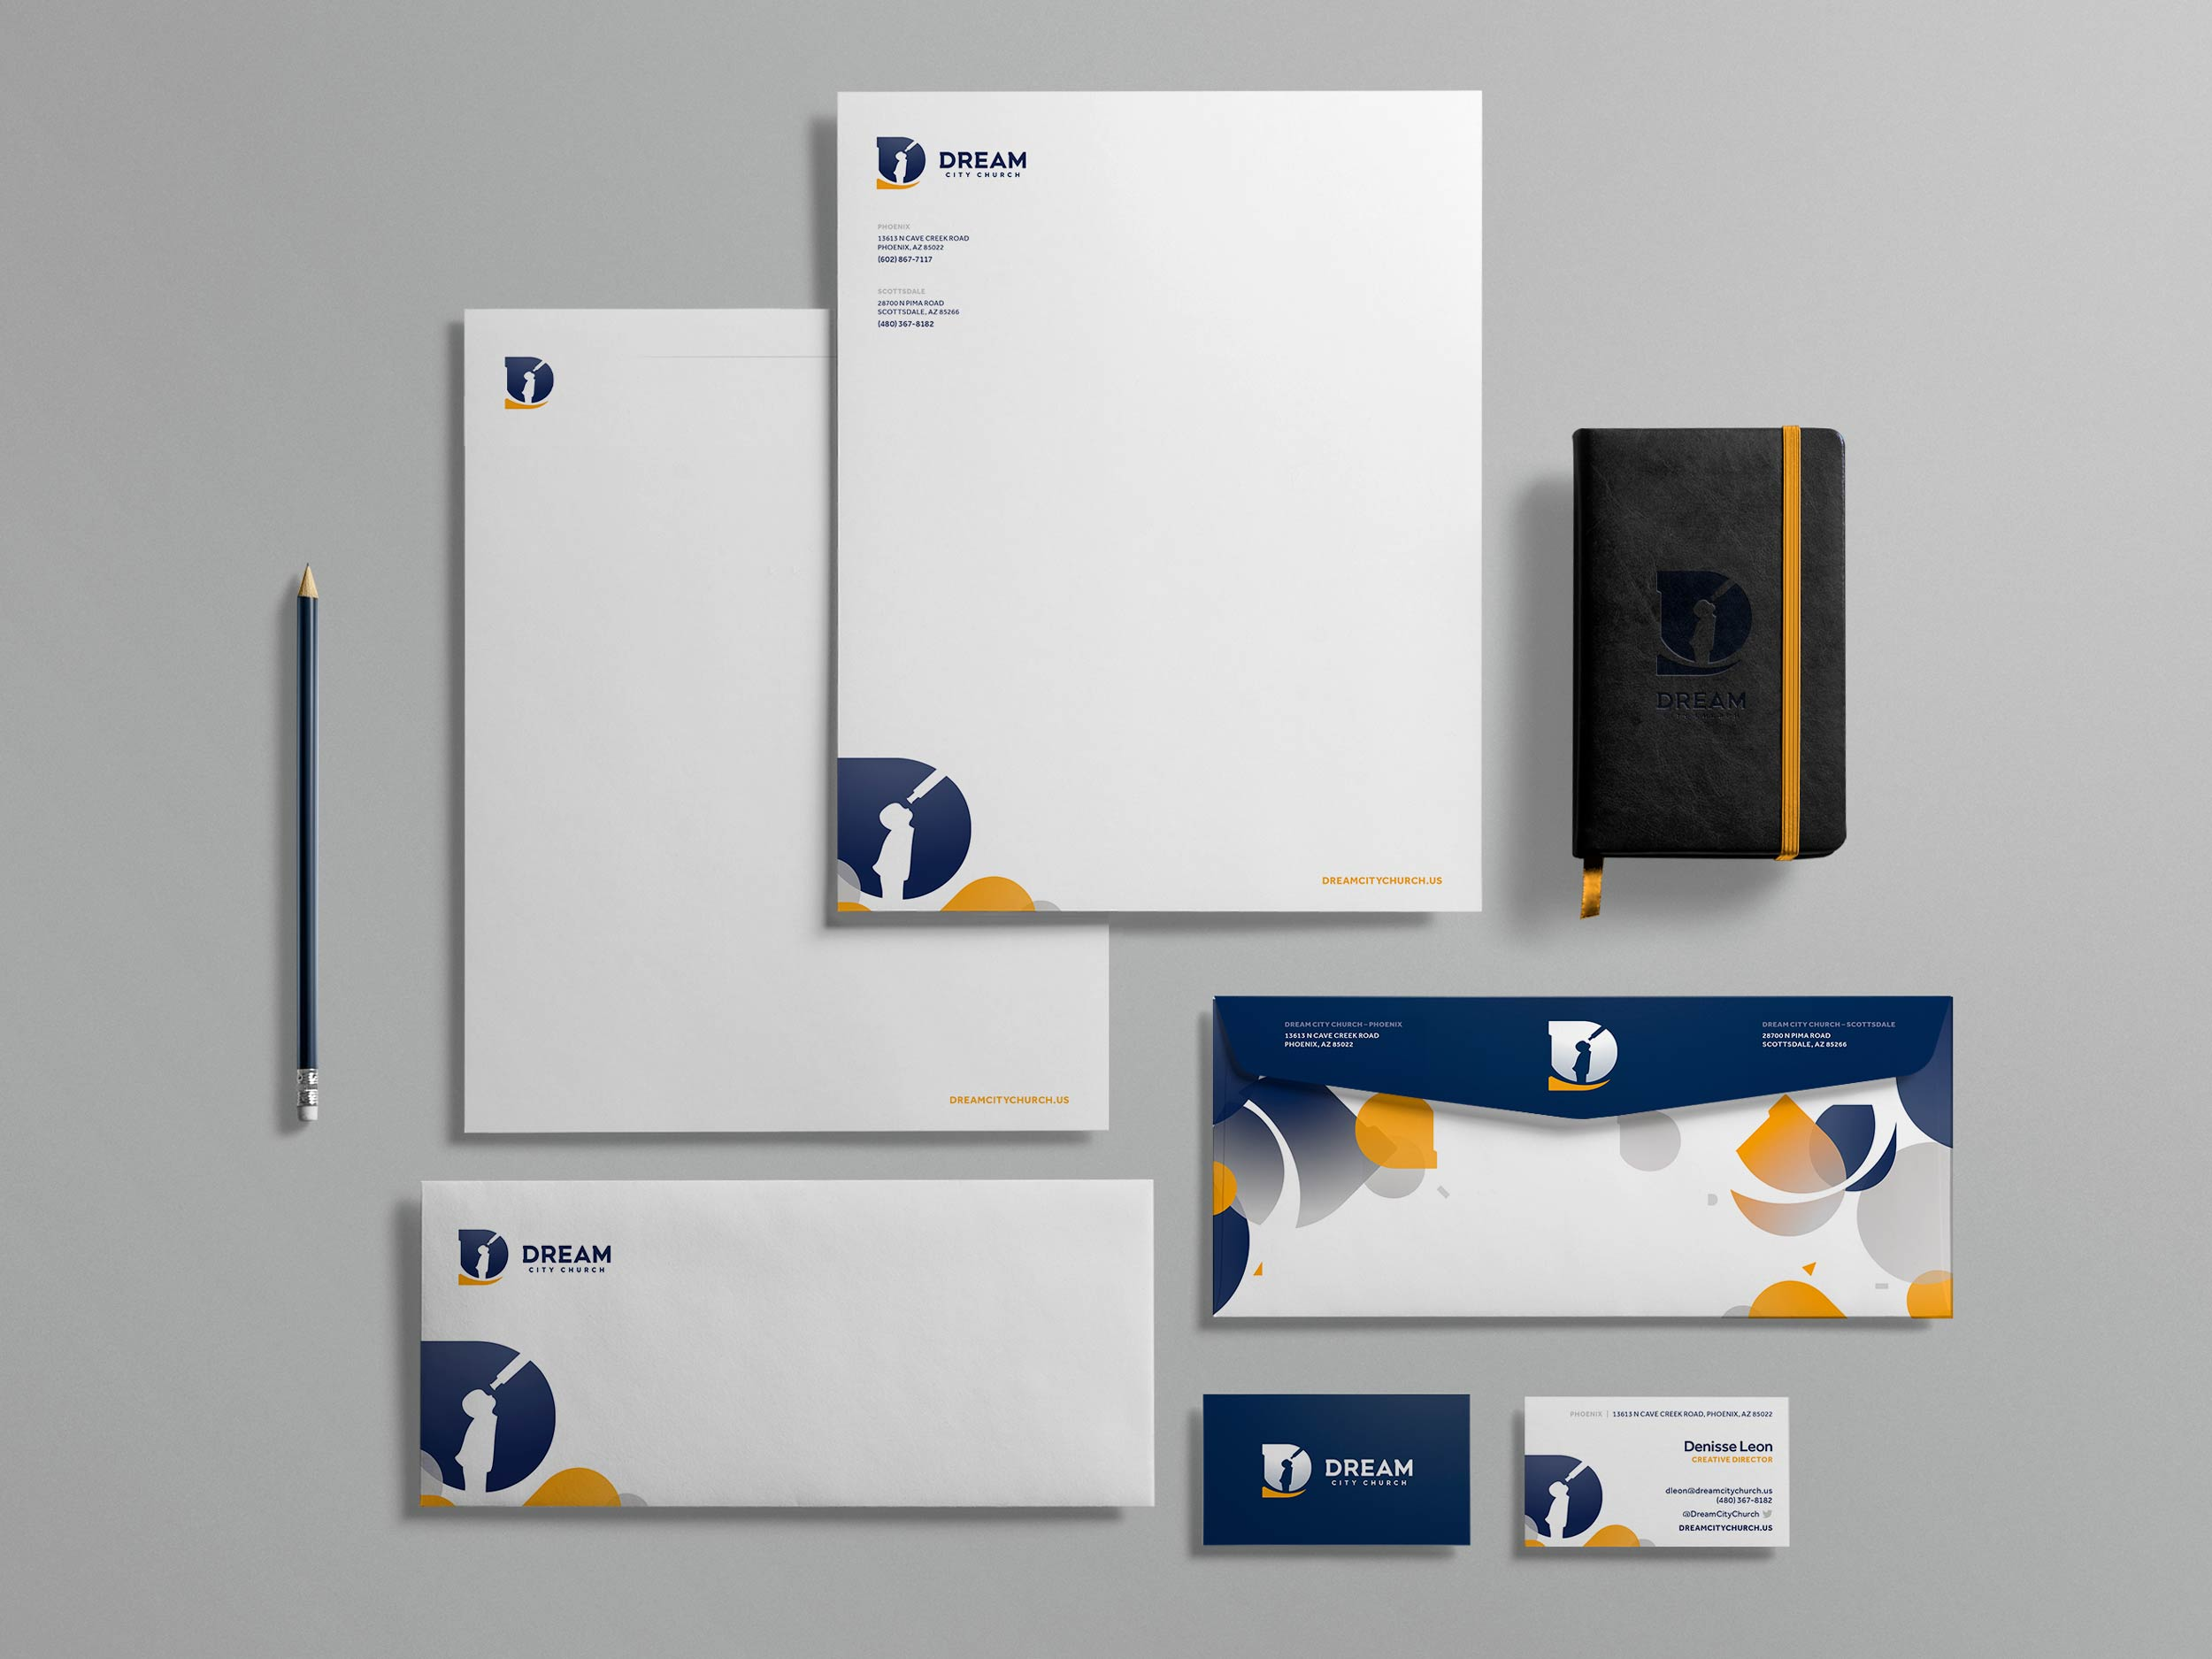 Full stationery set for Dream City Church. Image copyright Jeff Miller, HellothisisJeff Design LLC